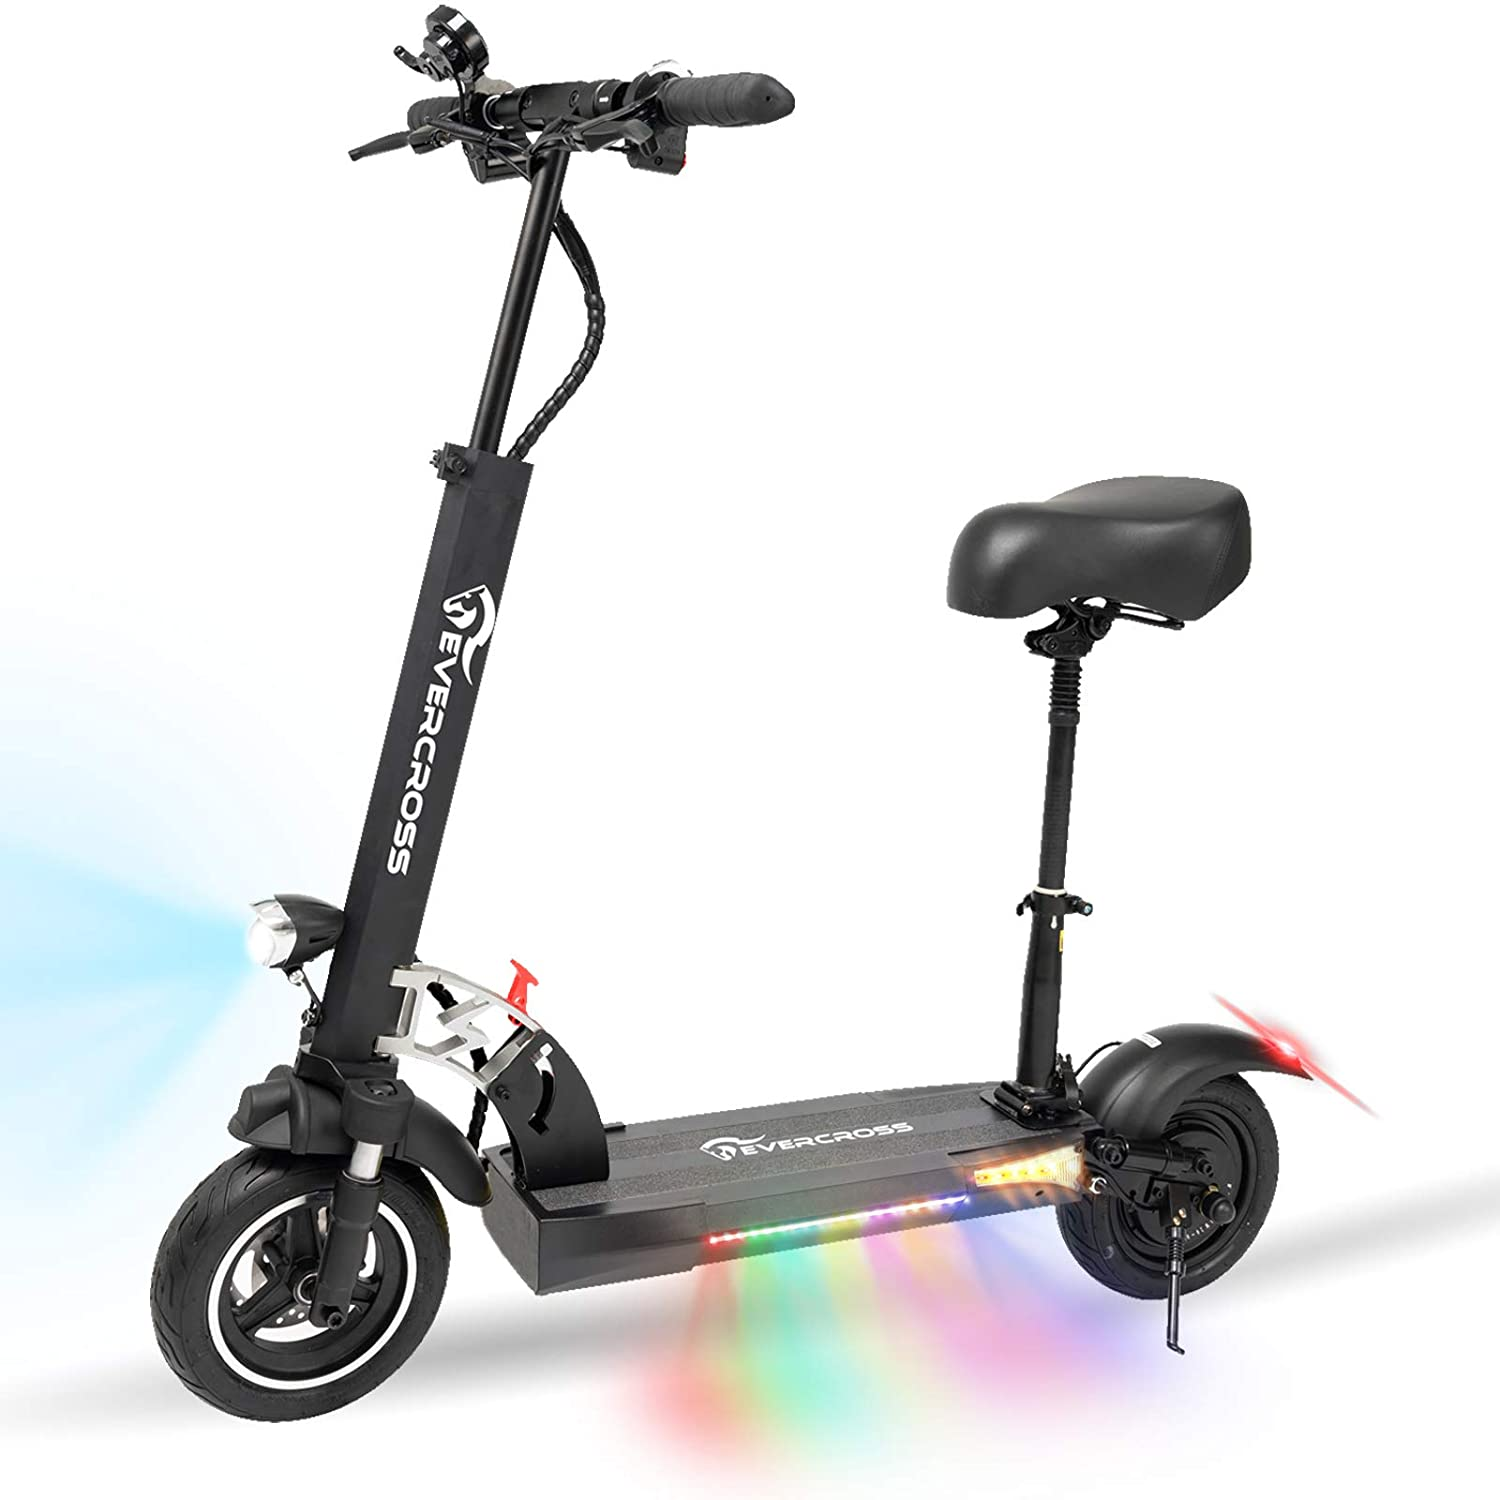 EverCross HB24 Electric Scooter